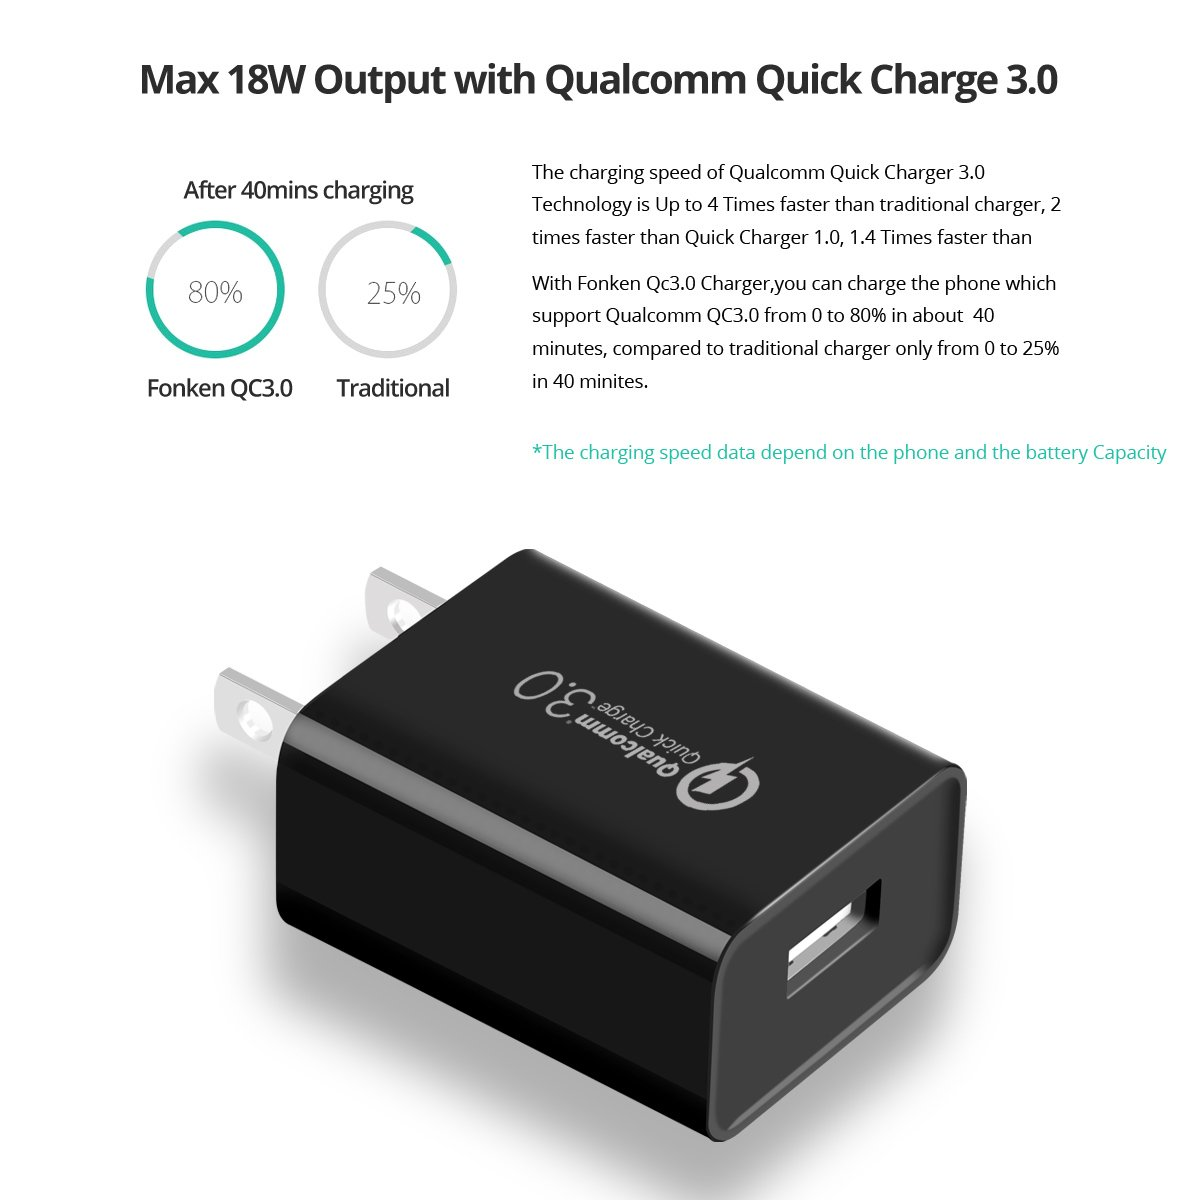 [3-Pack] Quick Charge 3.0, FONKEN 18W USB Wall Charger QC 3.0 Adapter 3Amp Fast Charger Block Compatible with Samsung Galaxy S7 S6, Note 5/4, LG G5 ...